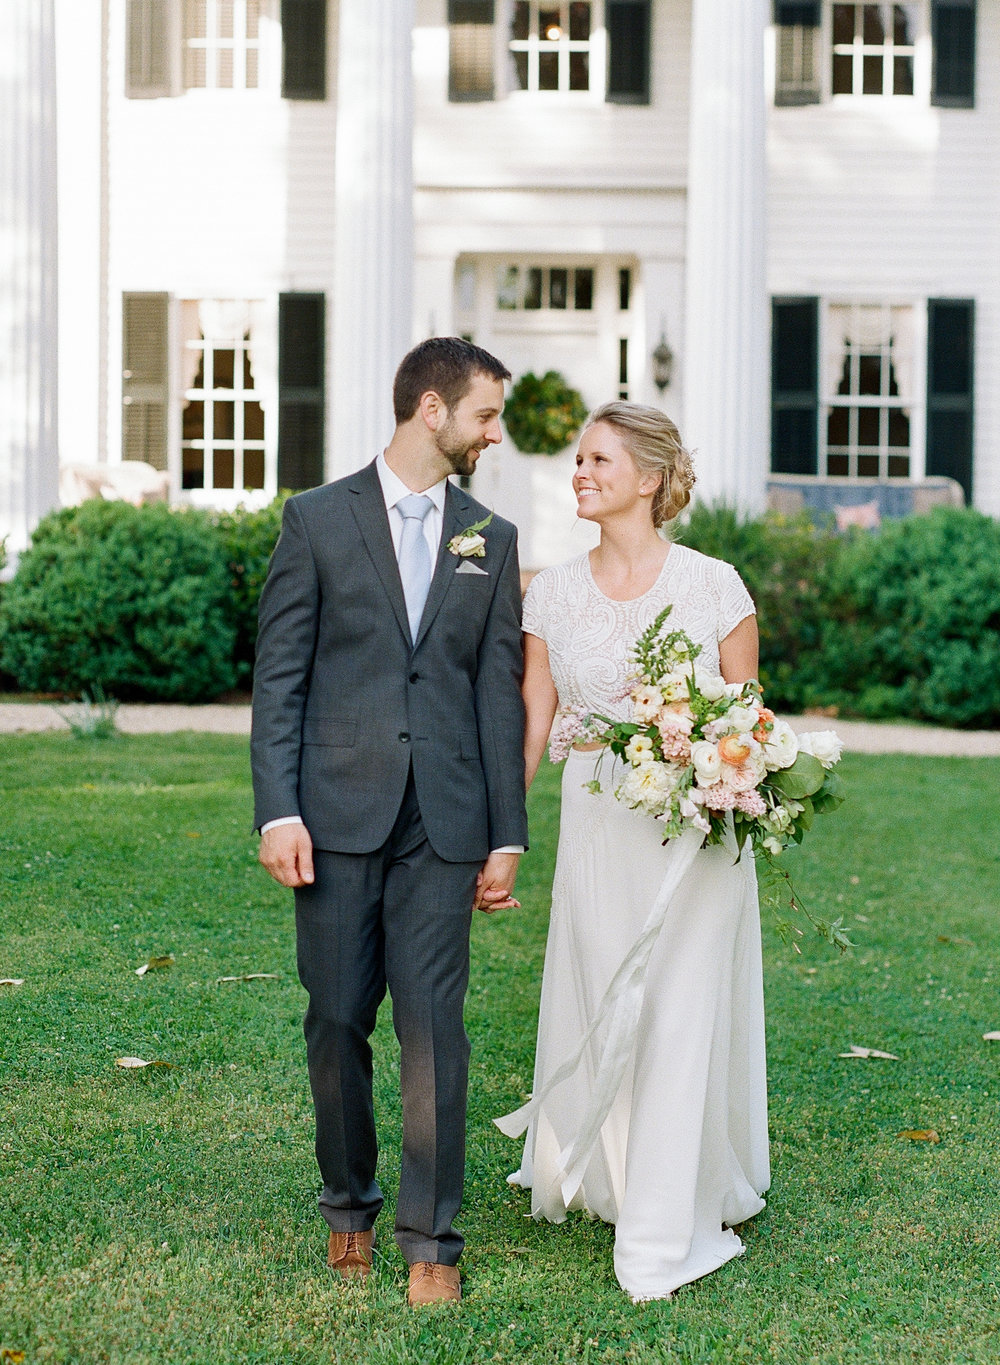 Southern Wedding at the Oaks by Carrie Joy Photography-1019.jpg